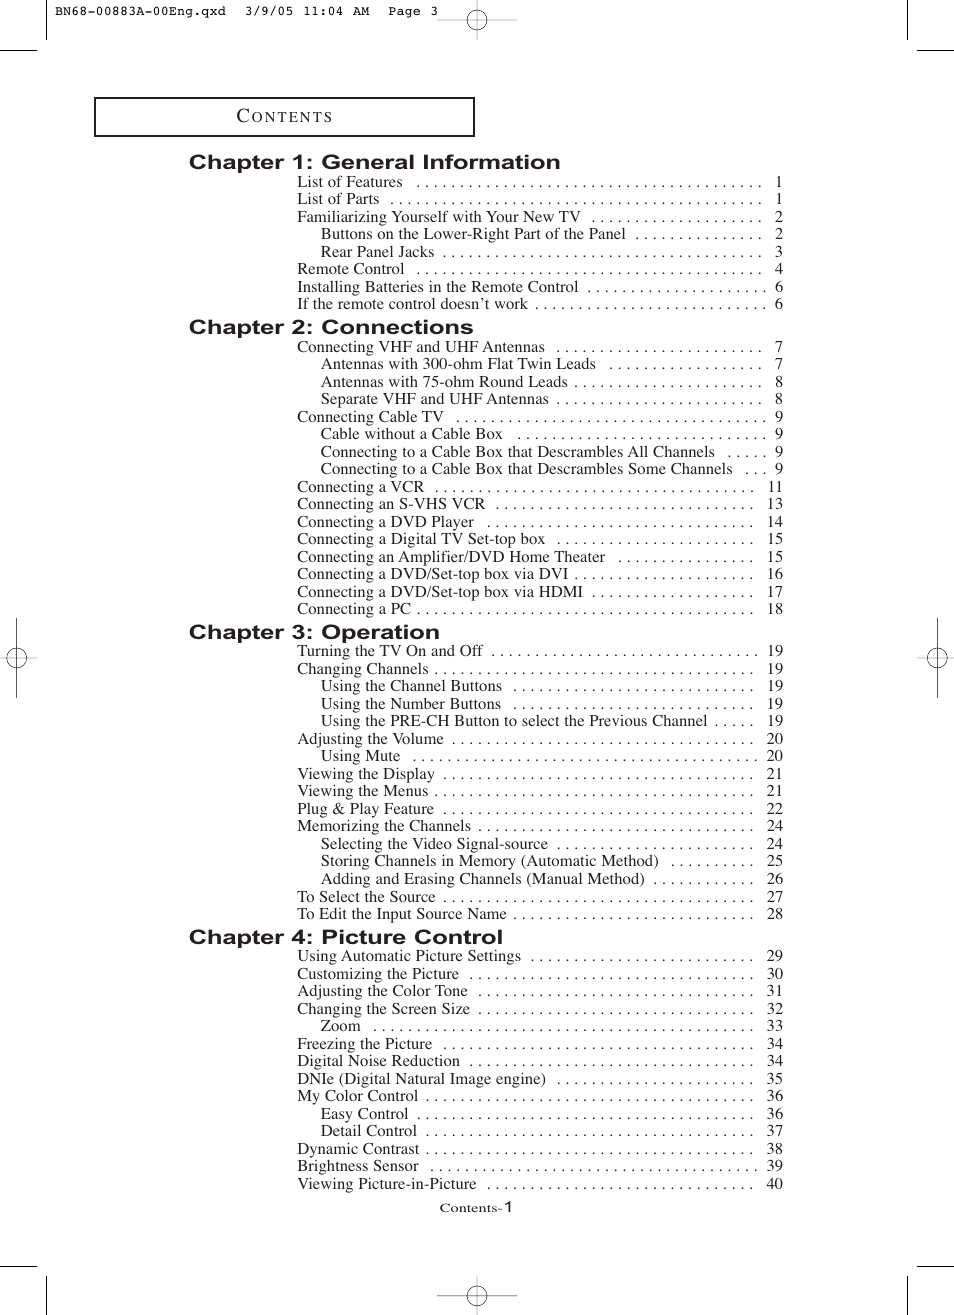 Chapter 1: general information, Chapter 2: connections